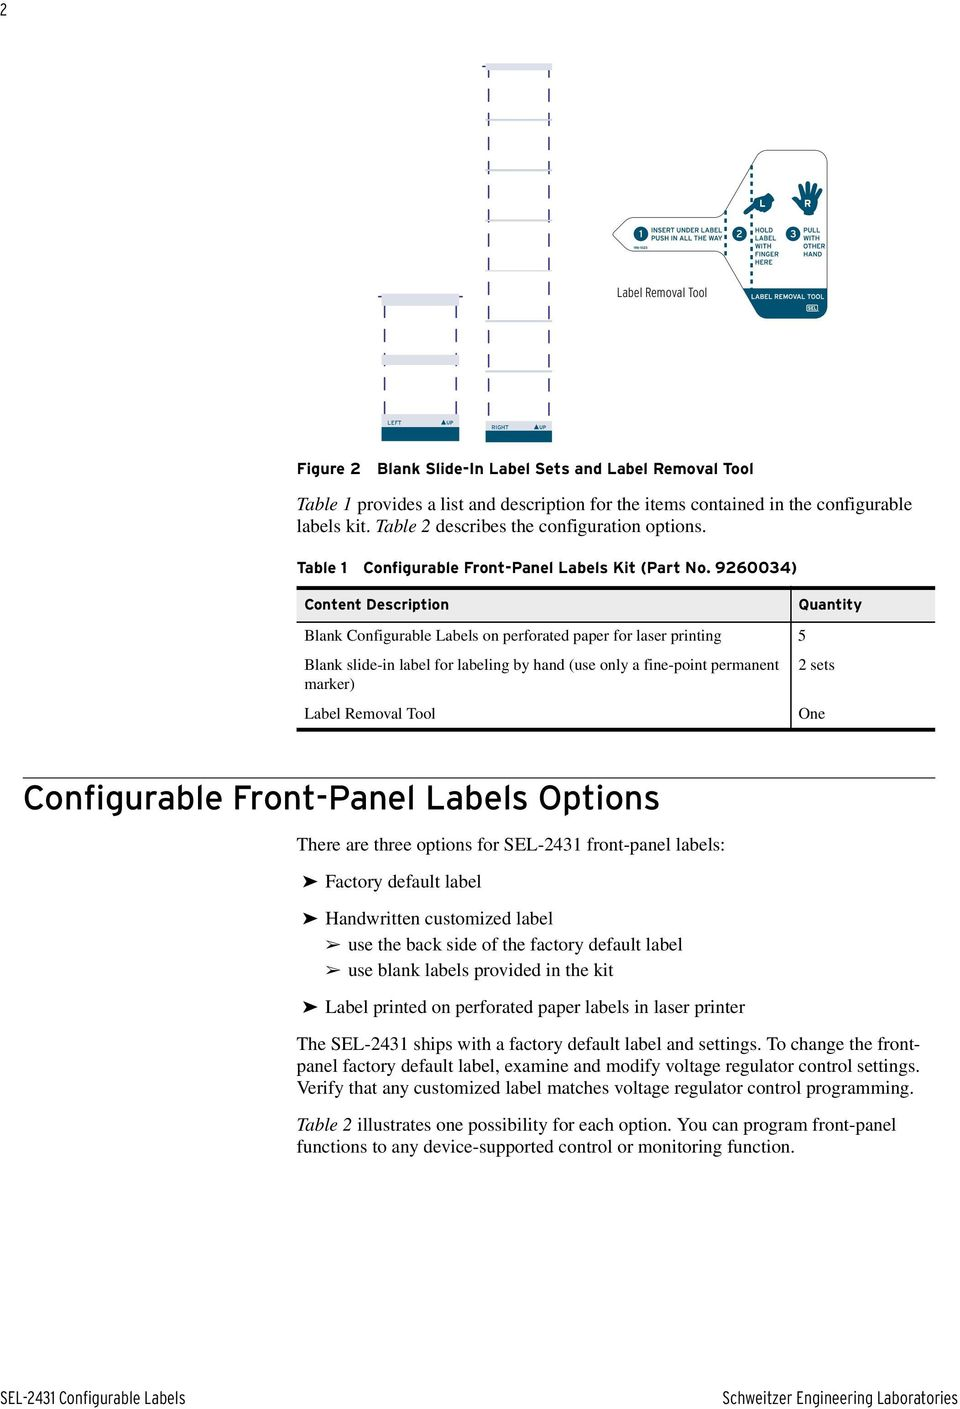 9260034) Content Description Quantity Blank Configurable Labels on perforated paper for laser printing 5 Blank slide-in label for labeling by hand (use only a fine-point permanent 2 sets marker)